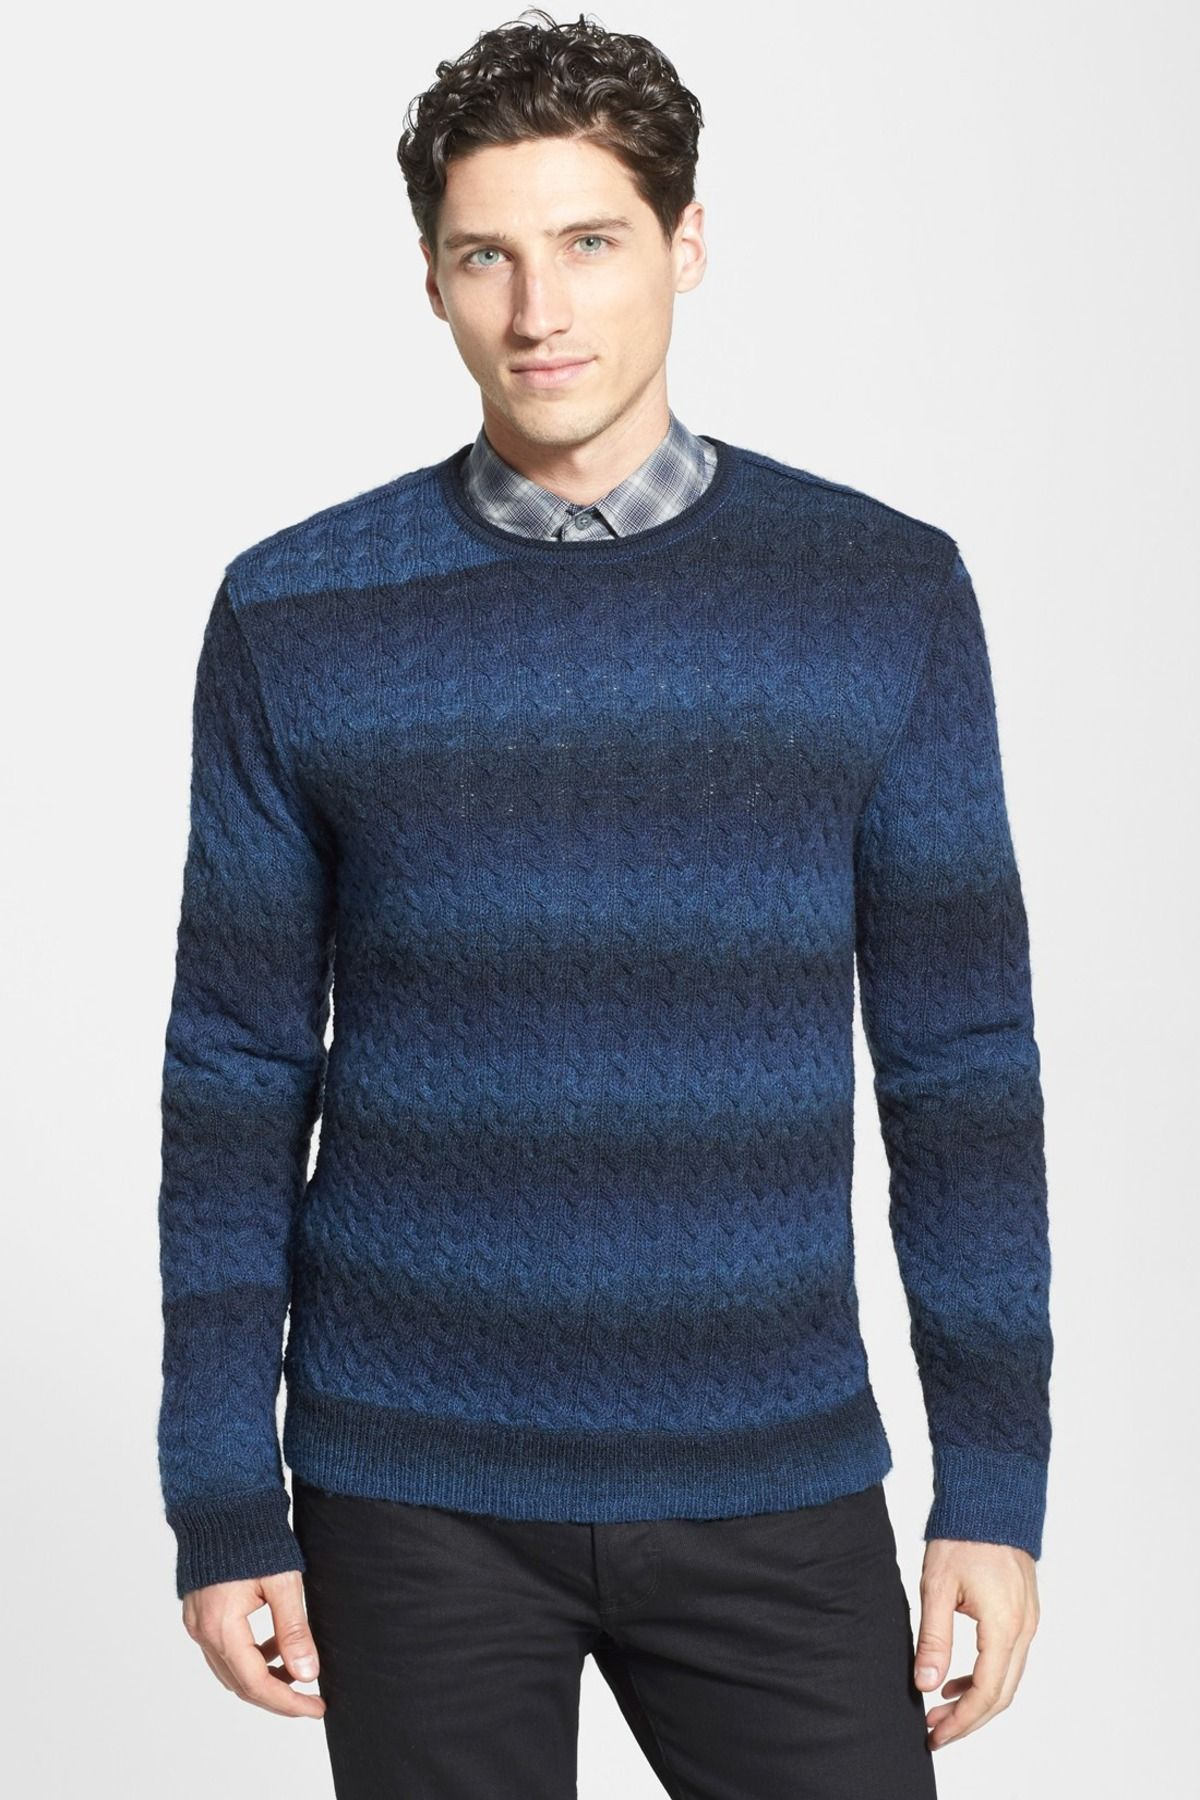 John Varvatos Star USA | Cable Knit Crew Neck Sweater | Crew neck ...